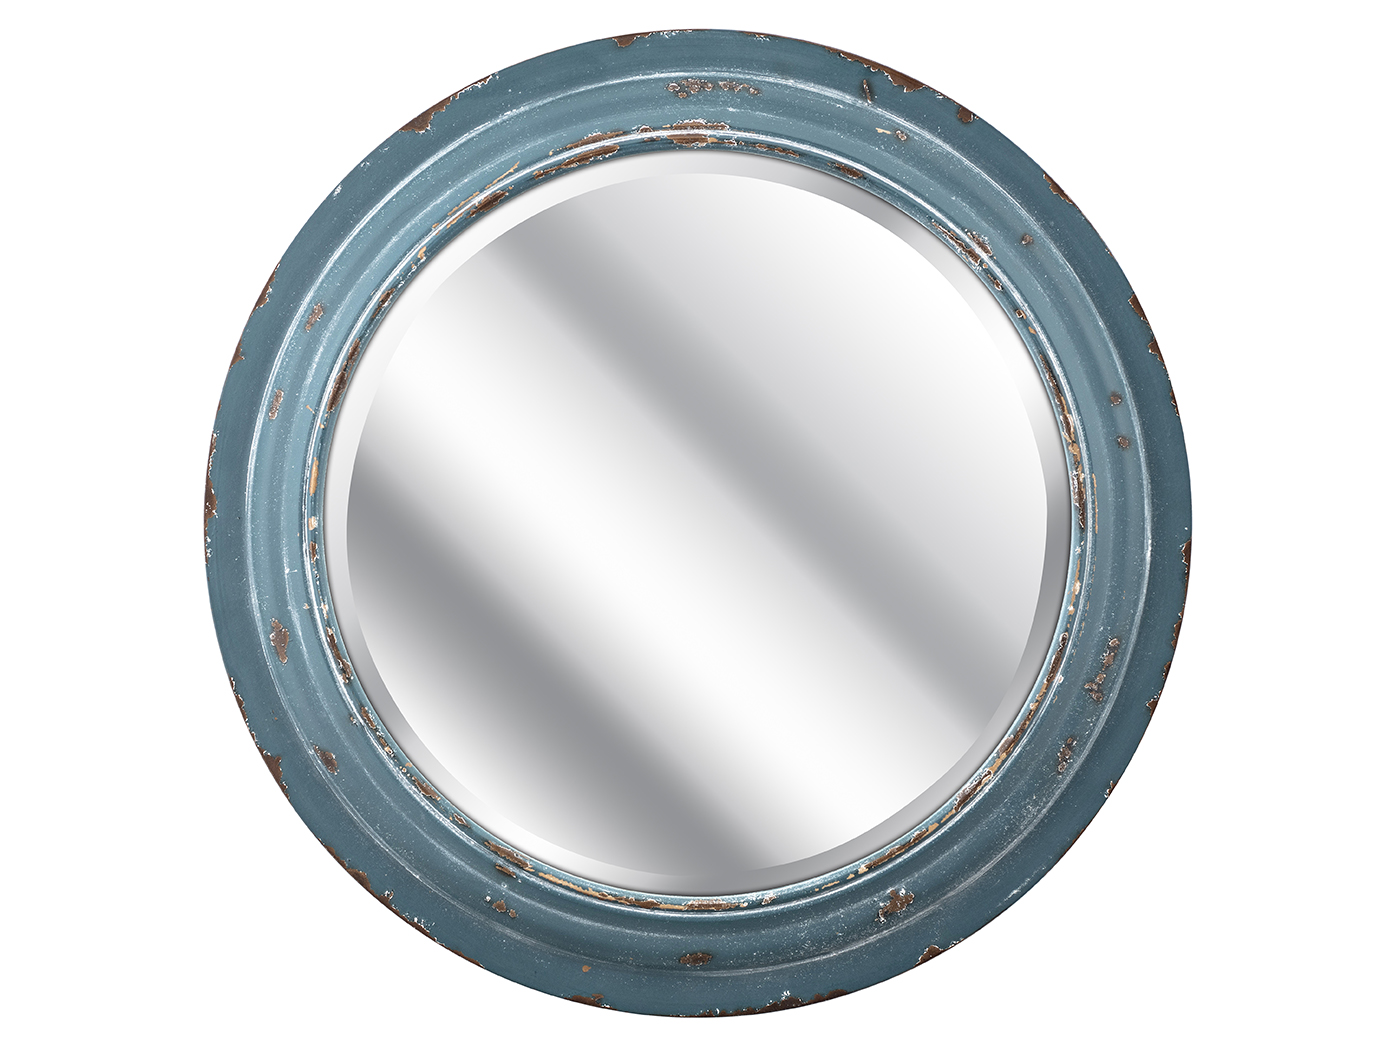 "Blue Round Beveled Wall Mirror 23.5""Dia."